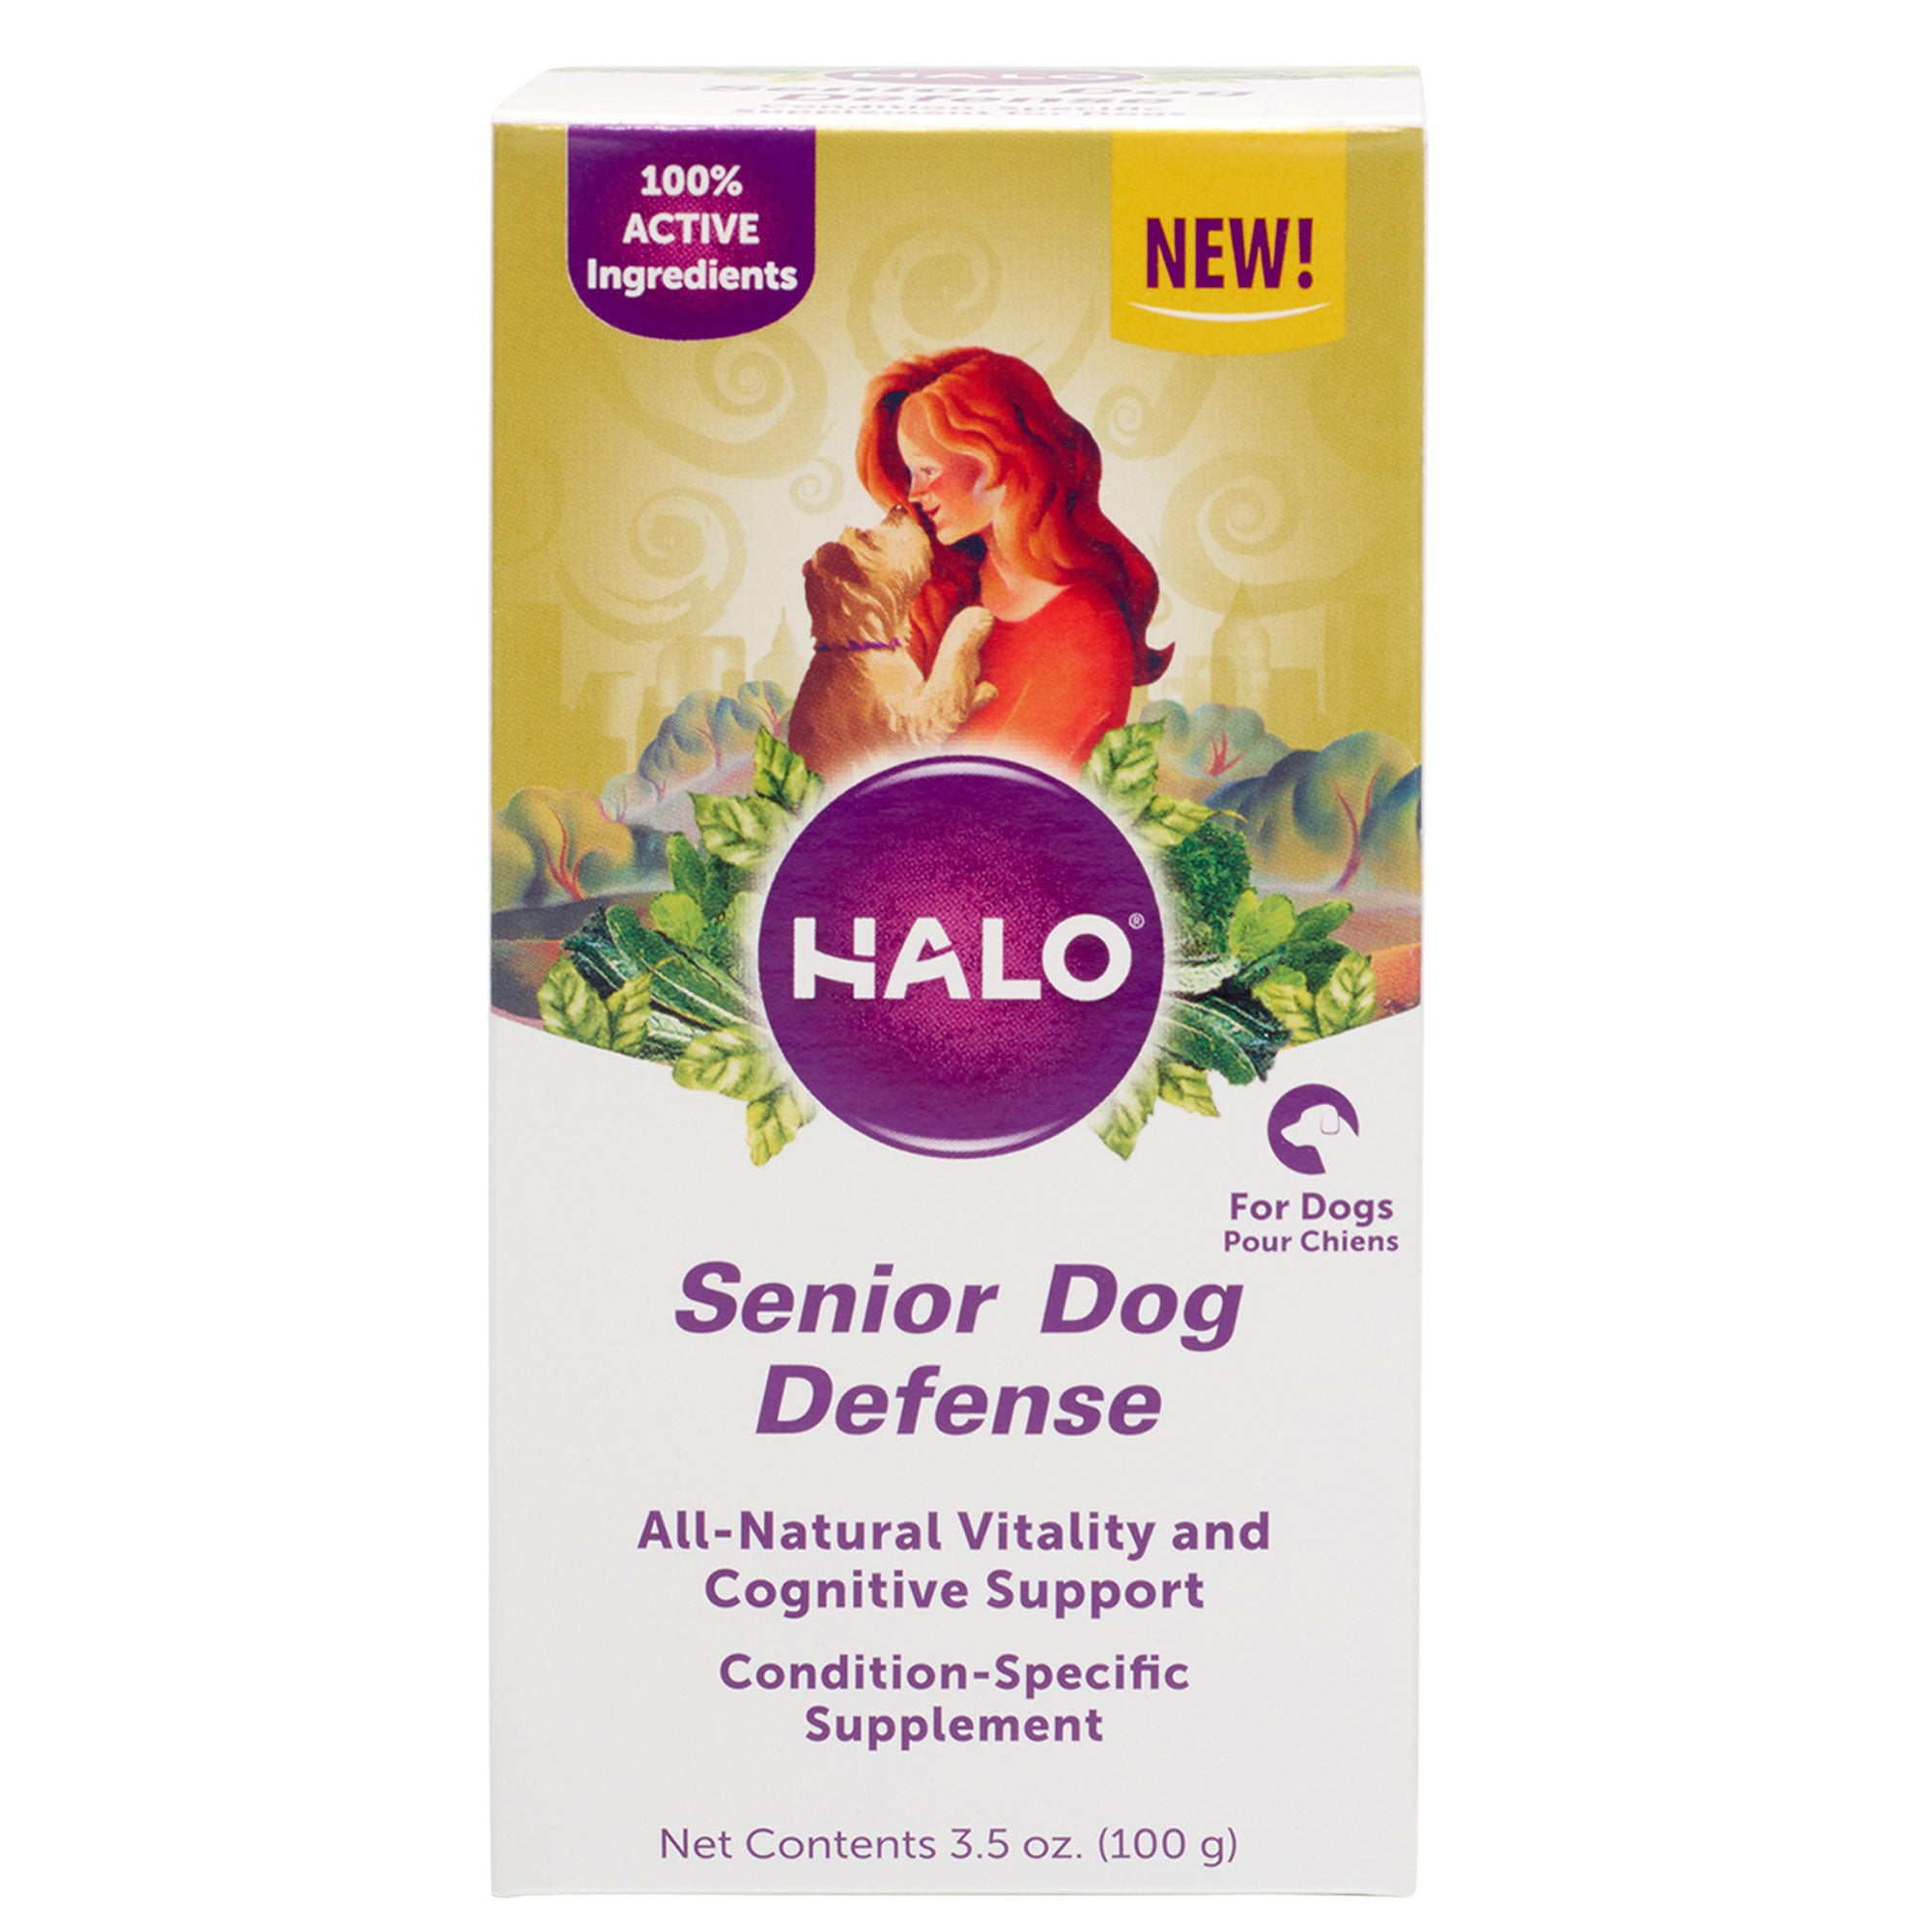 Halo Senior Dog Defense Supplement